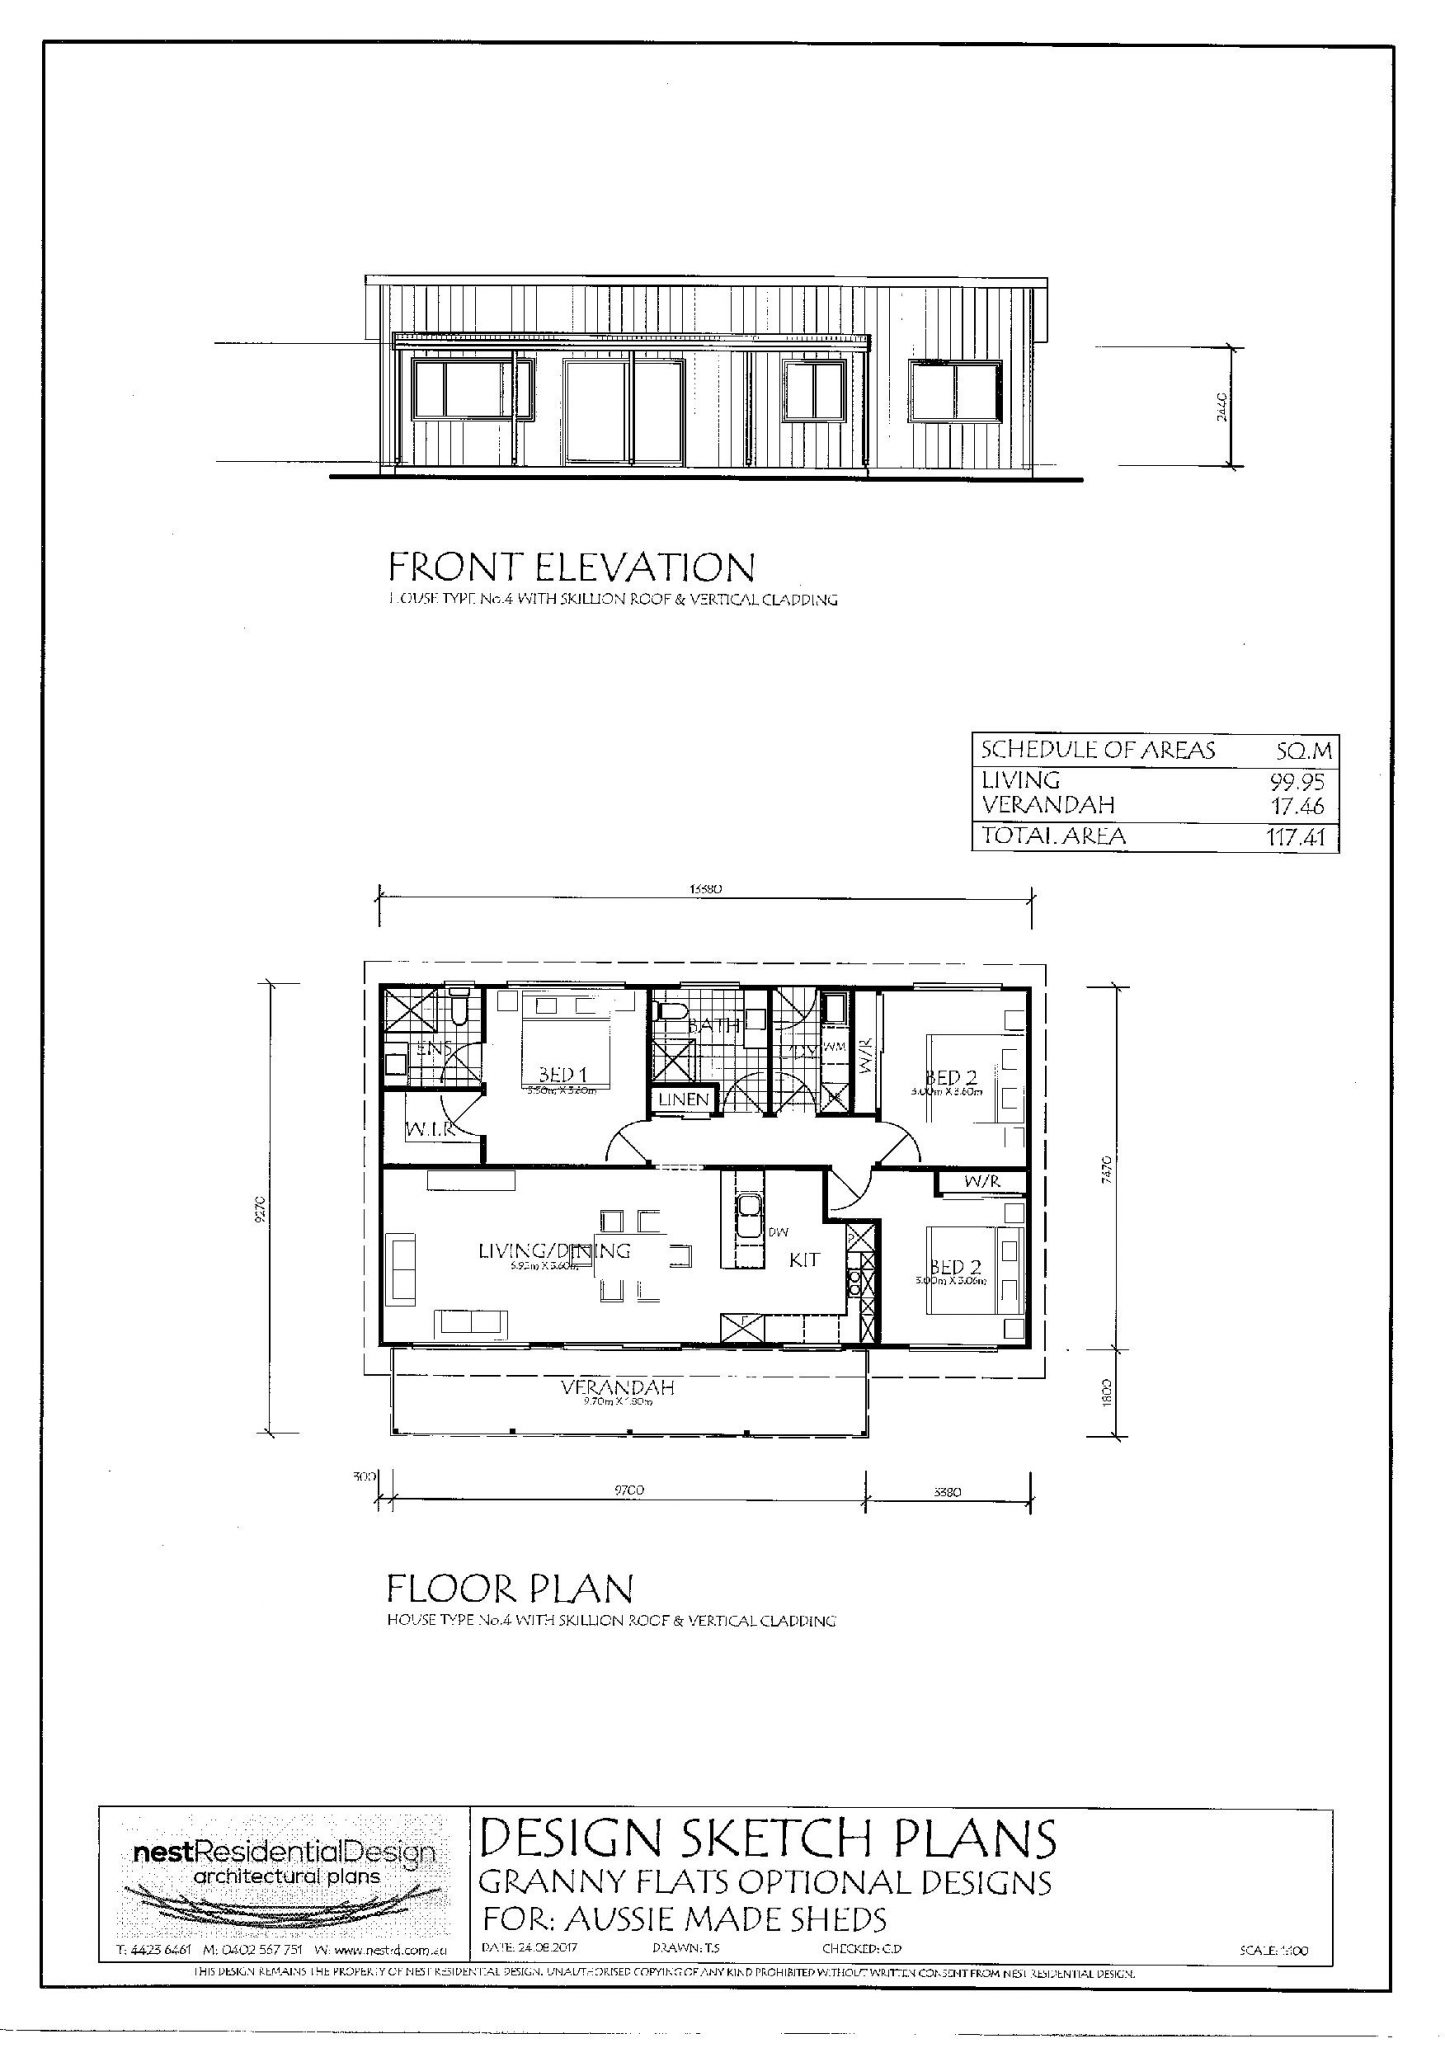 design-sketch-plans-aussie-made-sheds-24-august-2017-rotated-page-008